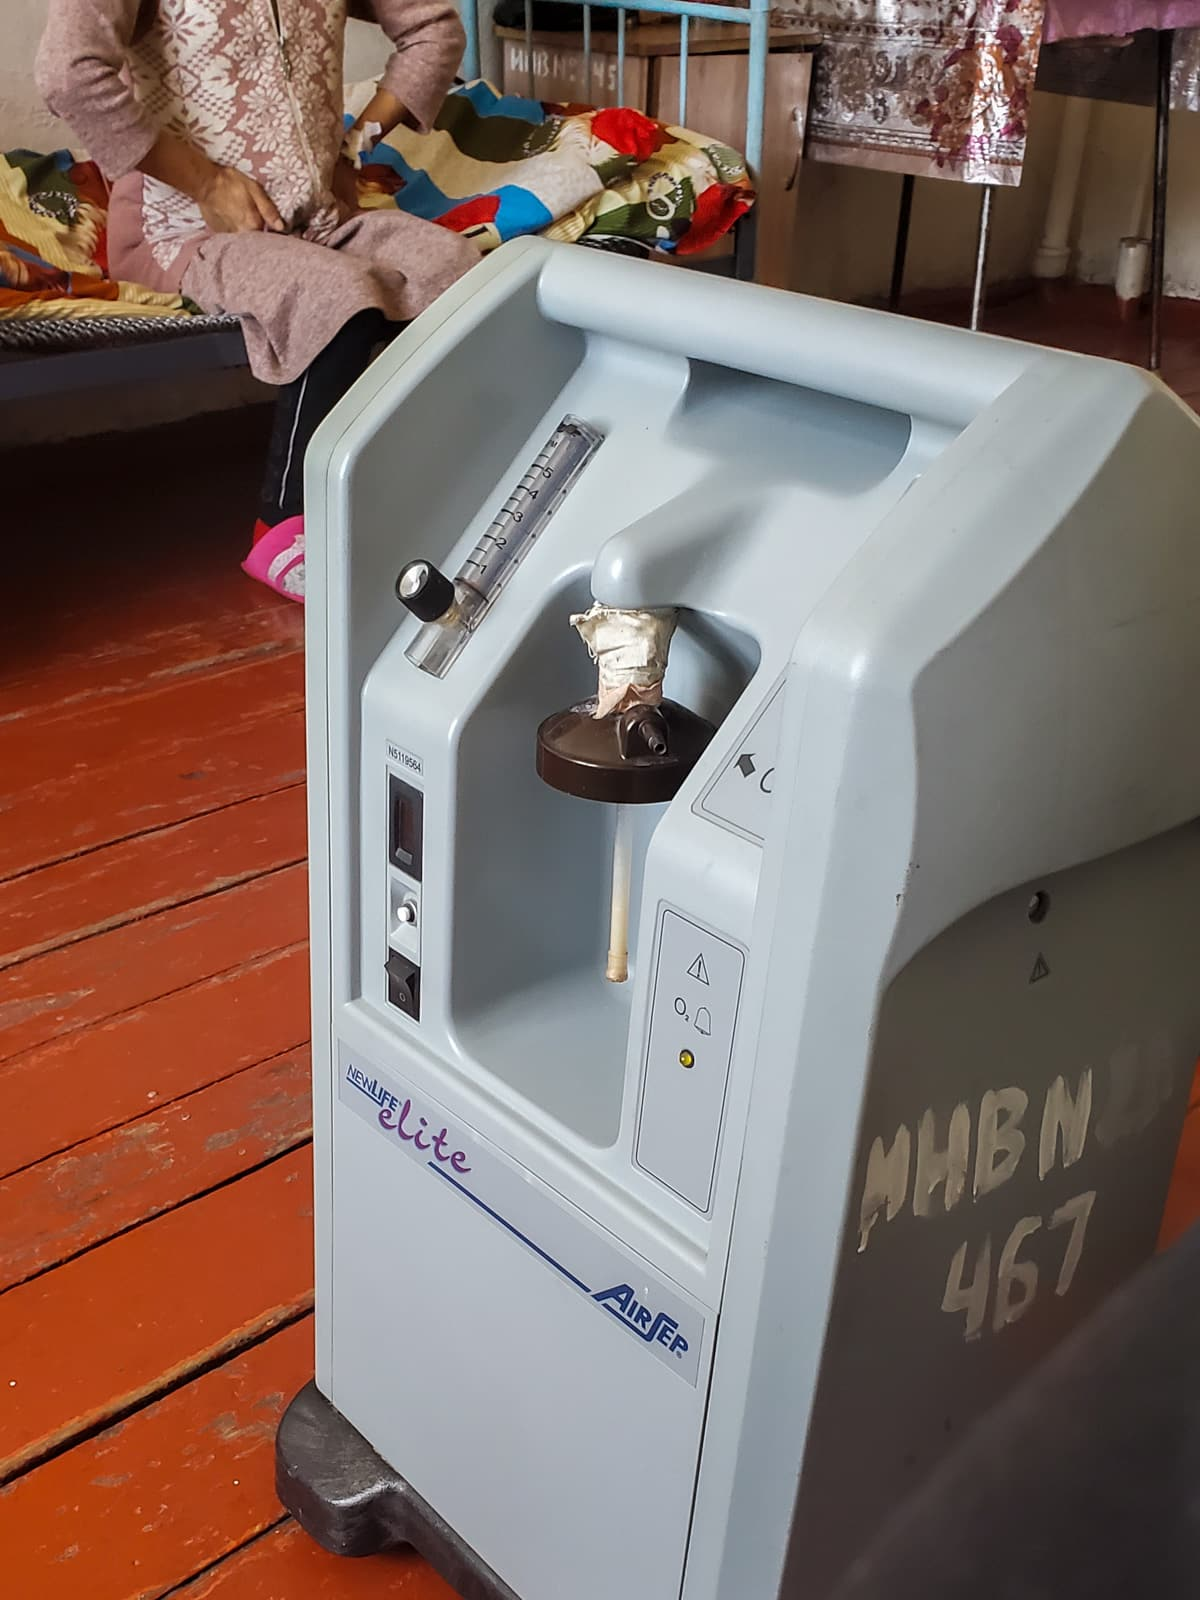 Oxygen machine in Murghab, Tajikistan